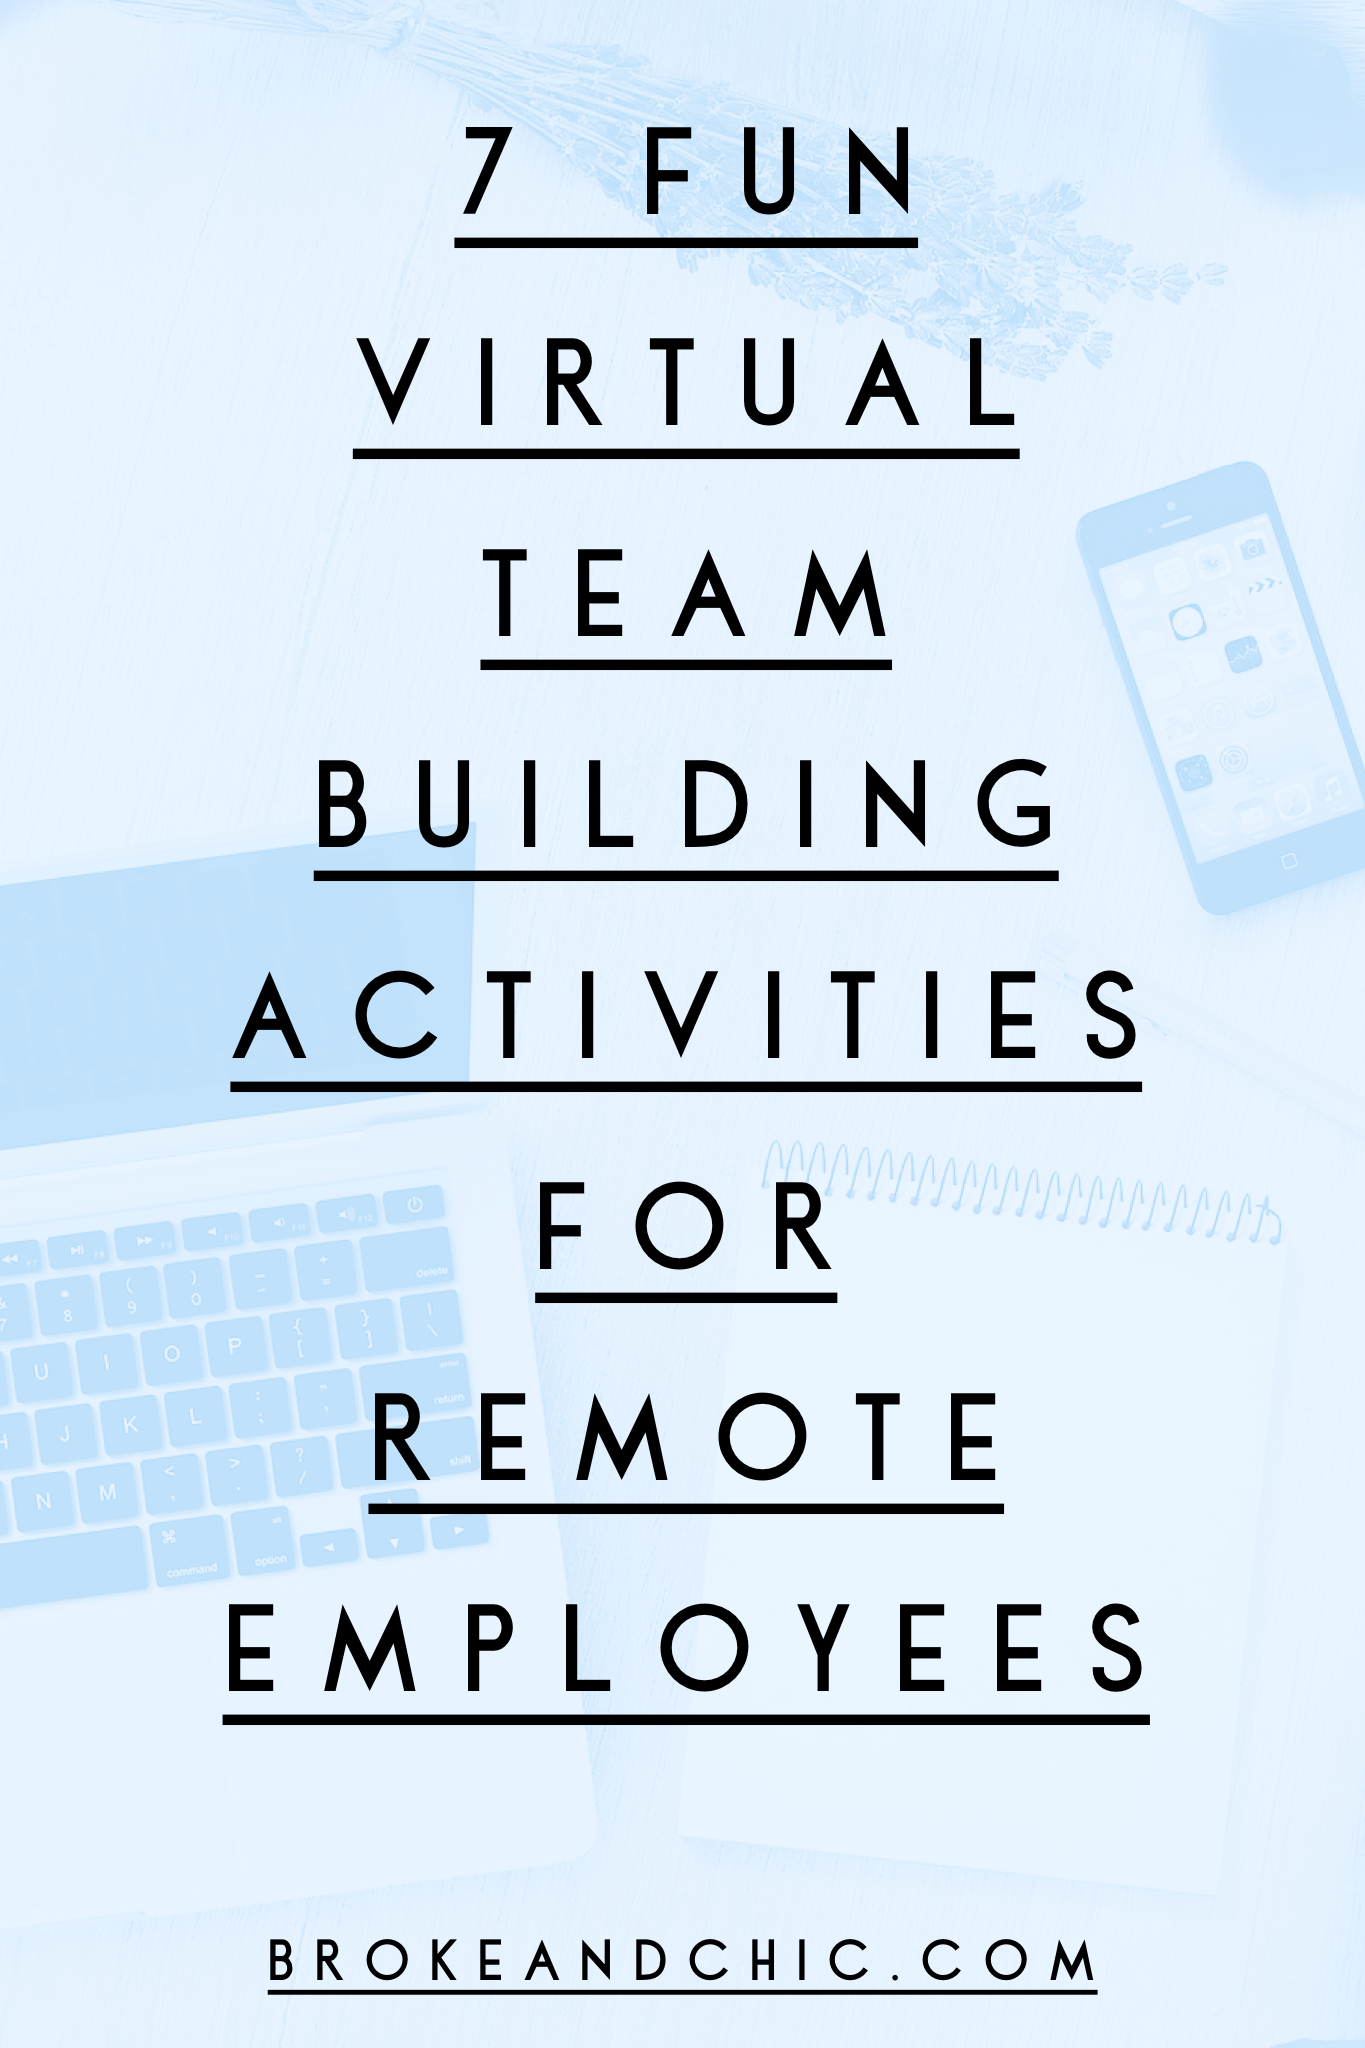 7 Fun Virtual Team Building Activities for Remote